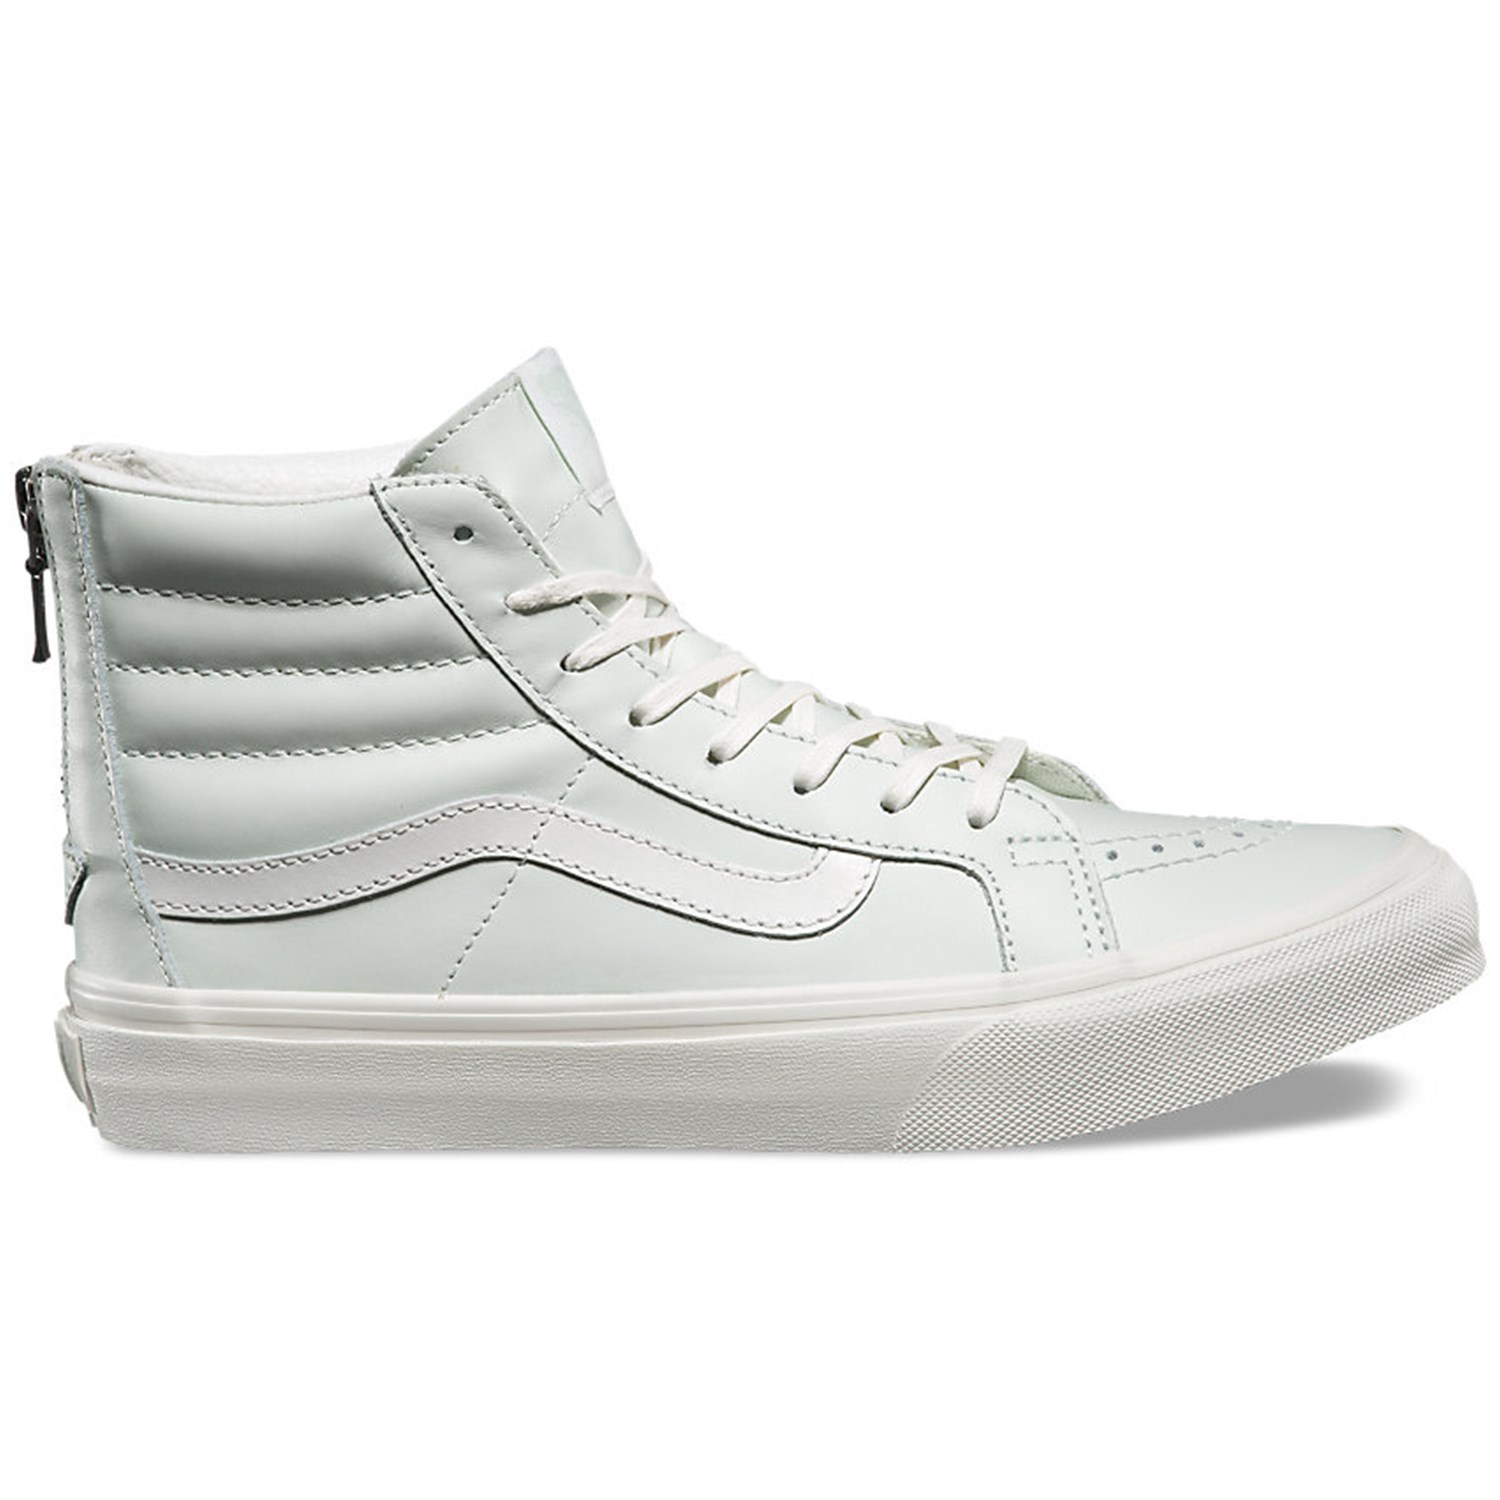 a484e5d8de Vans SK8-Hi Slim Zip Shoes - Women s